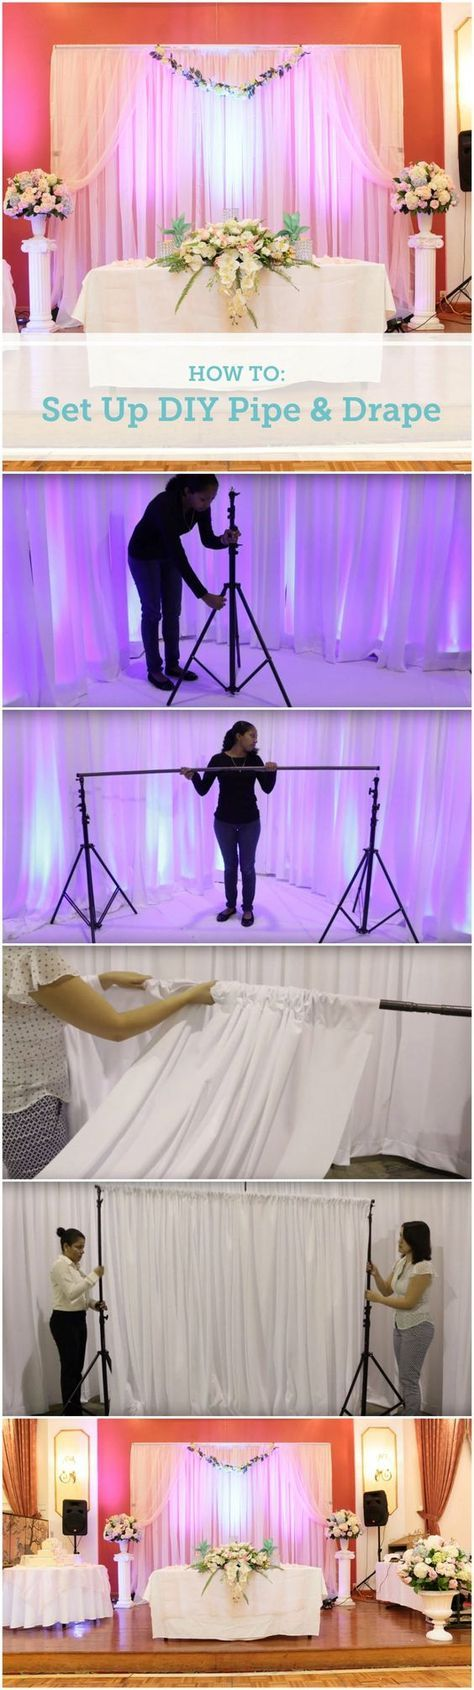 booth drape setup expo watch youtube pipe drapes pvc unique and diy